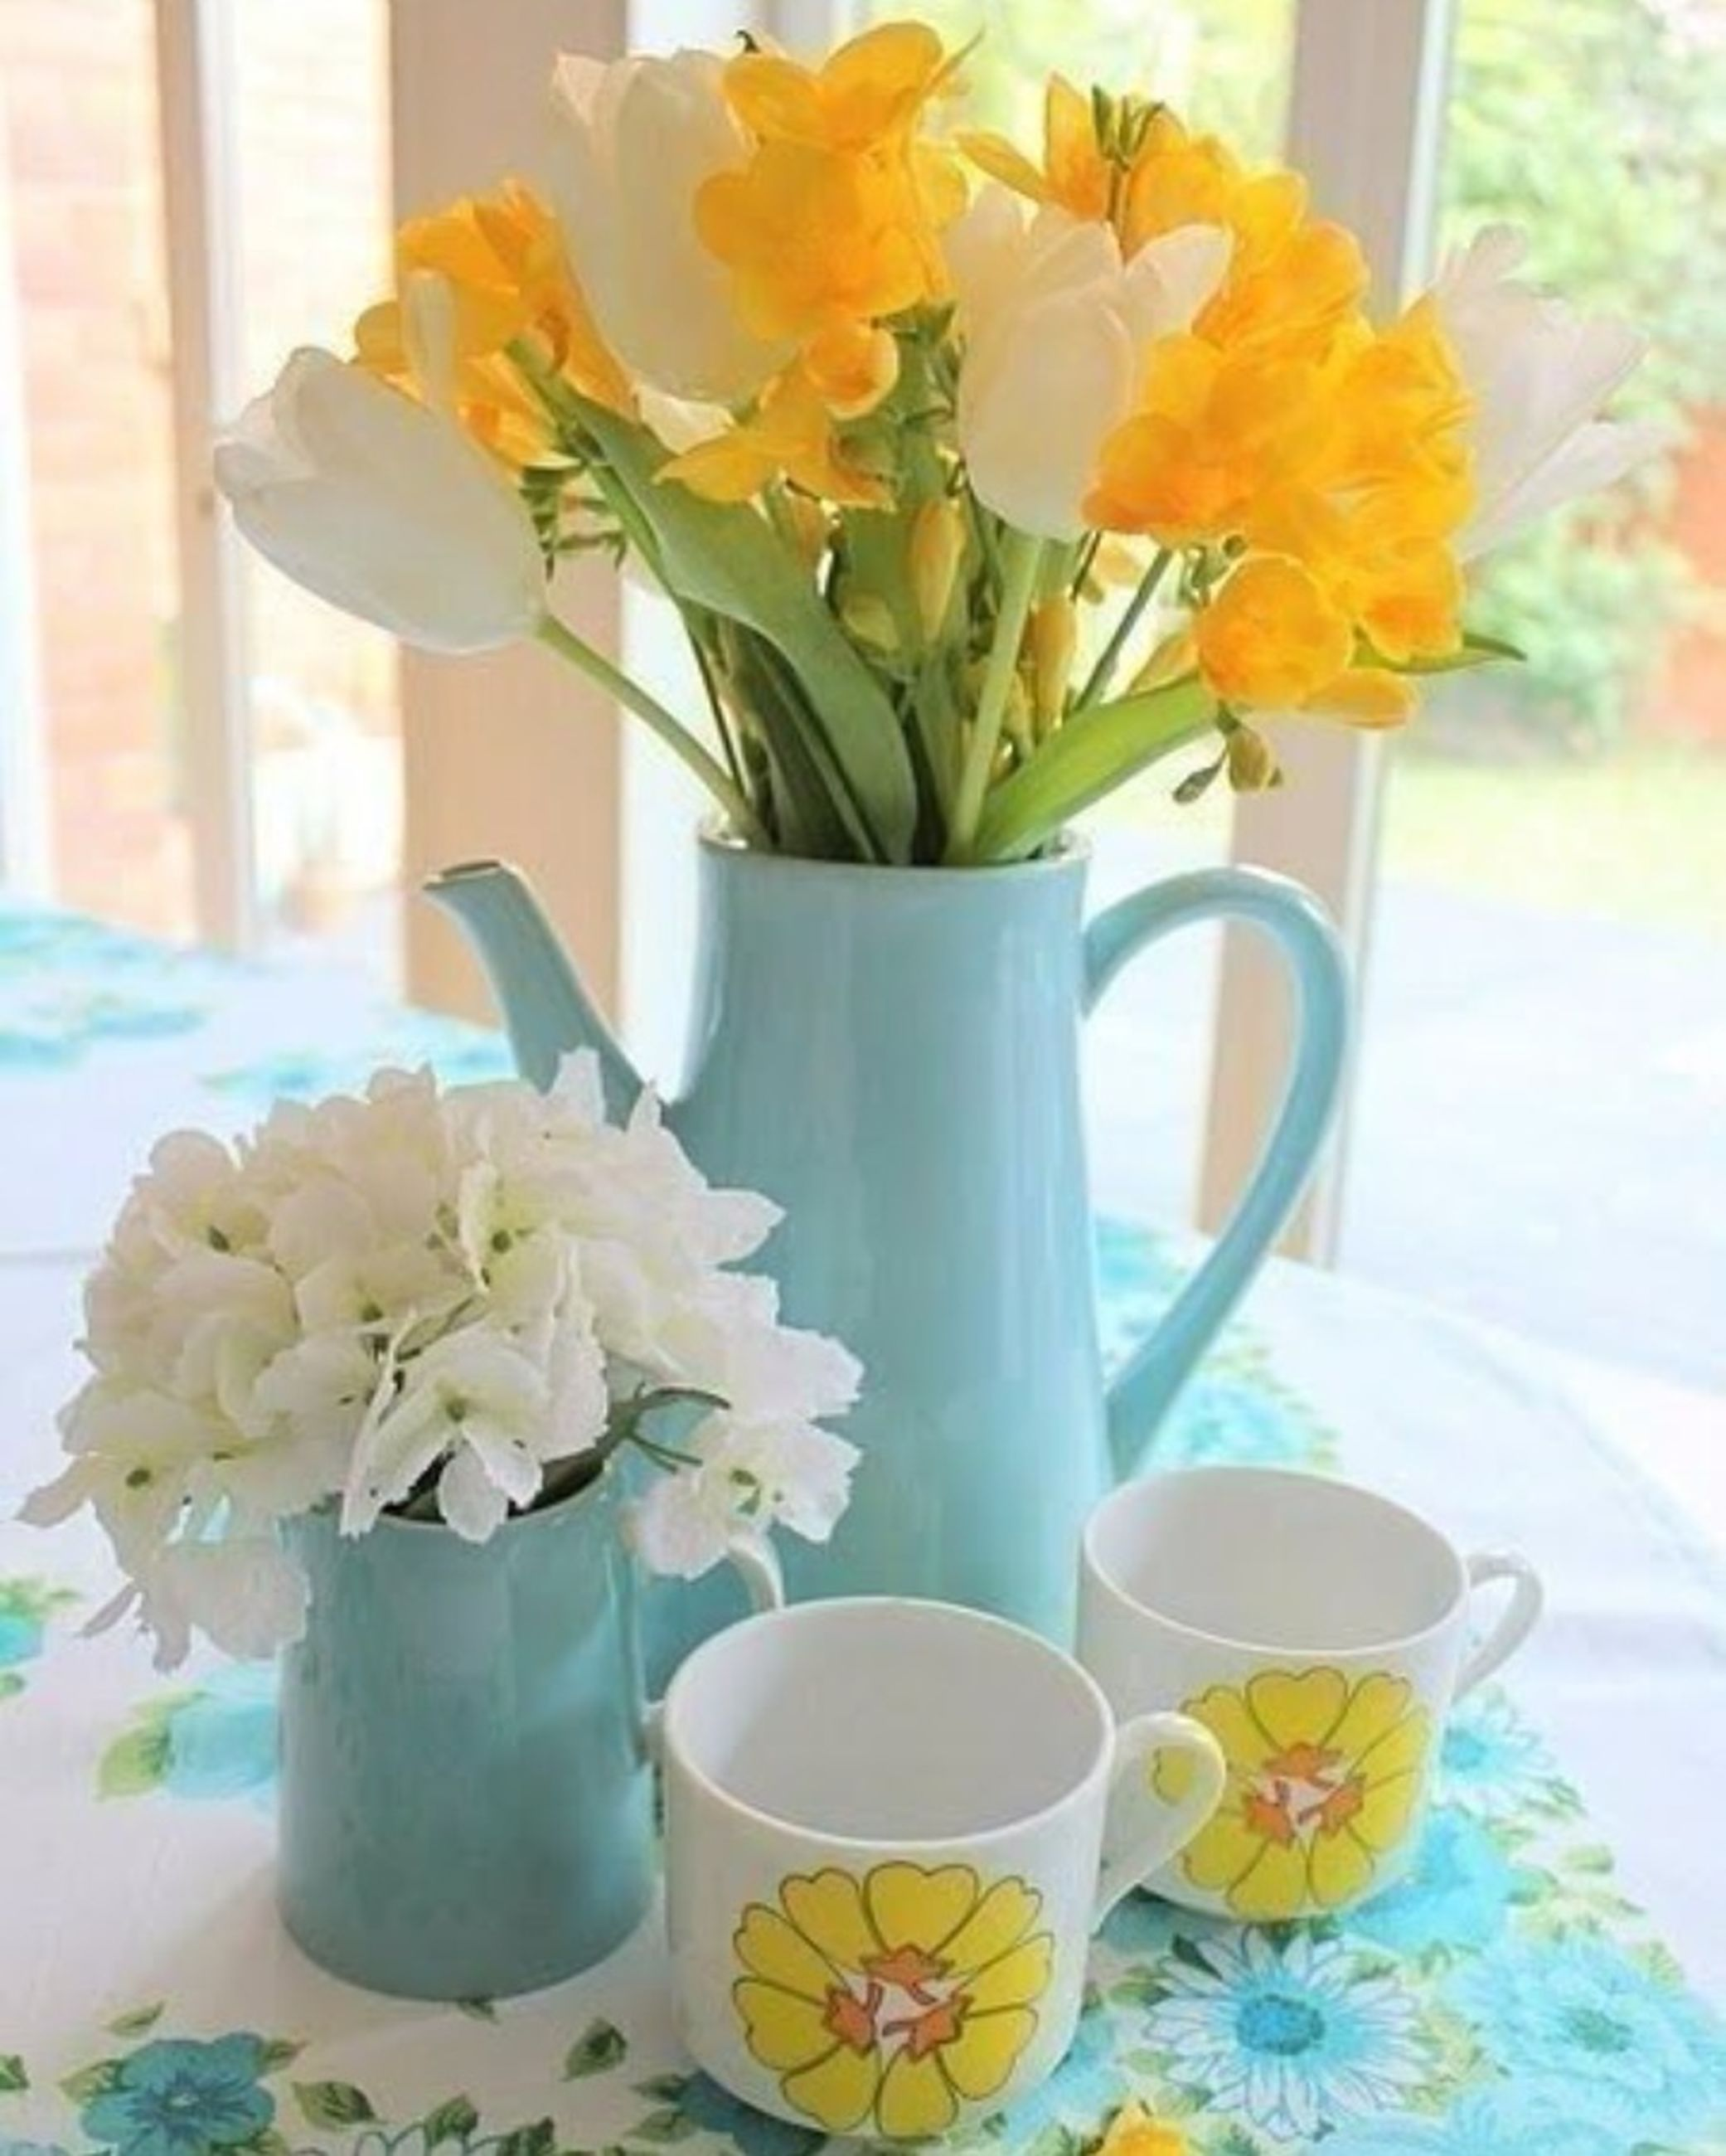 flower, vase, indoors, freshness, petal, fragility, flower head, table, potted plant, flower arrangement, flower pot, growth, home interior, plant, beauty in nature, yellow, window, glass - material, close-up, window sill